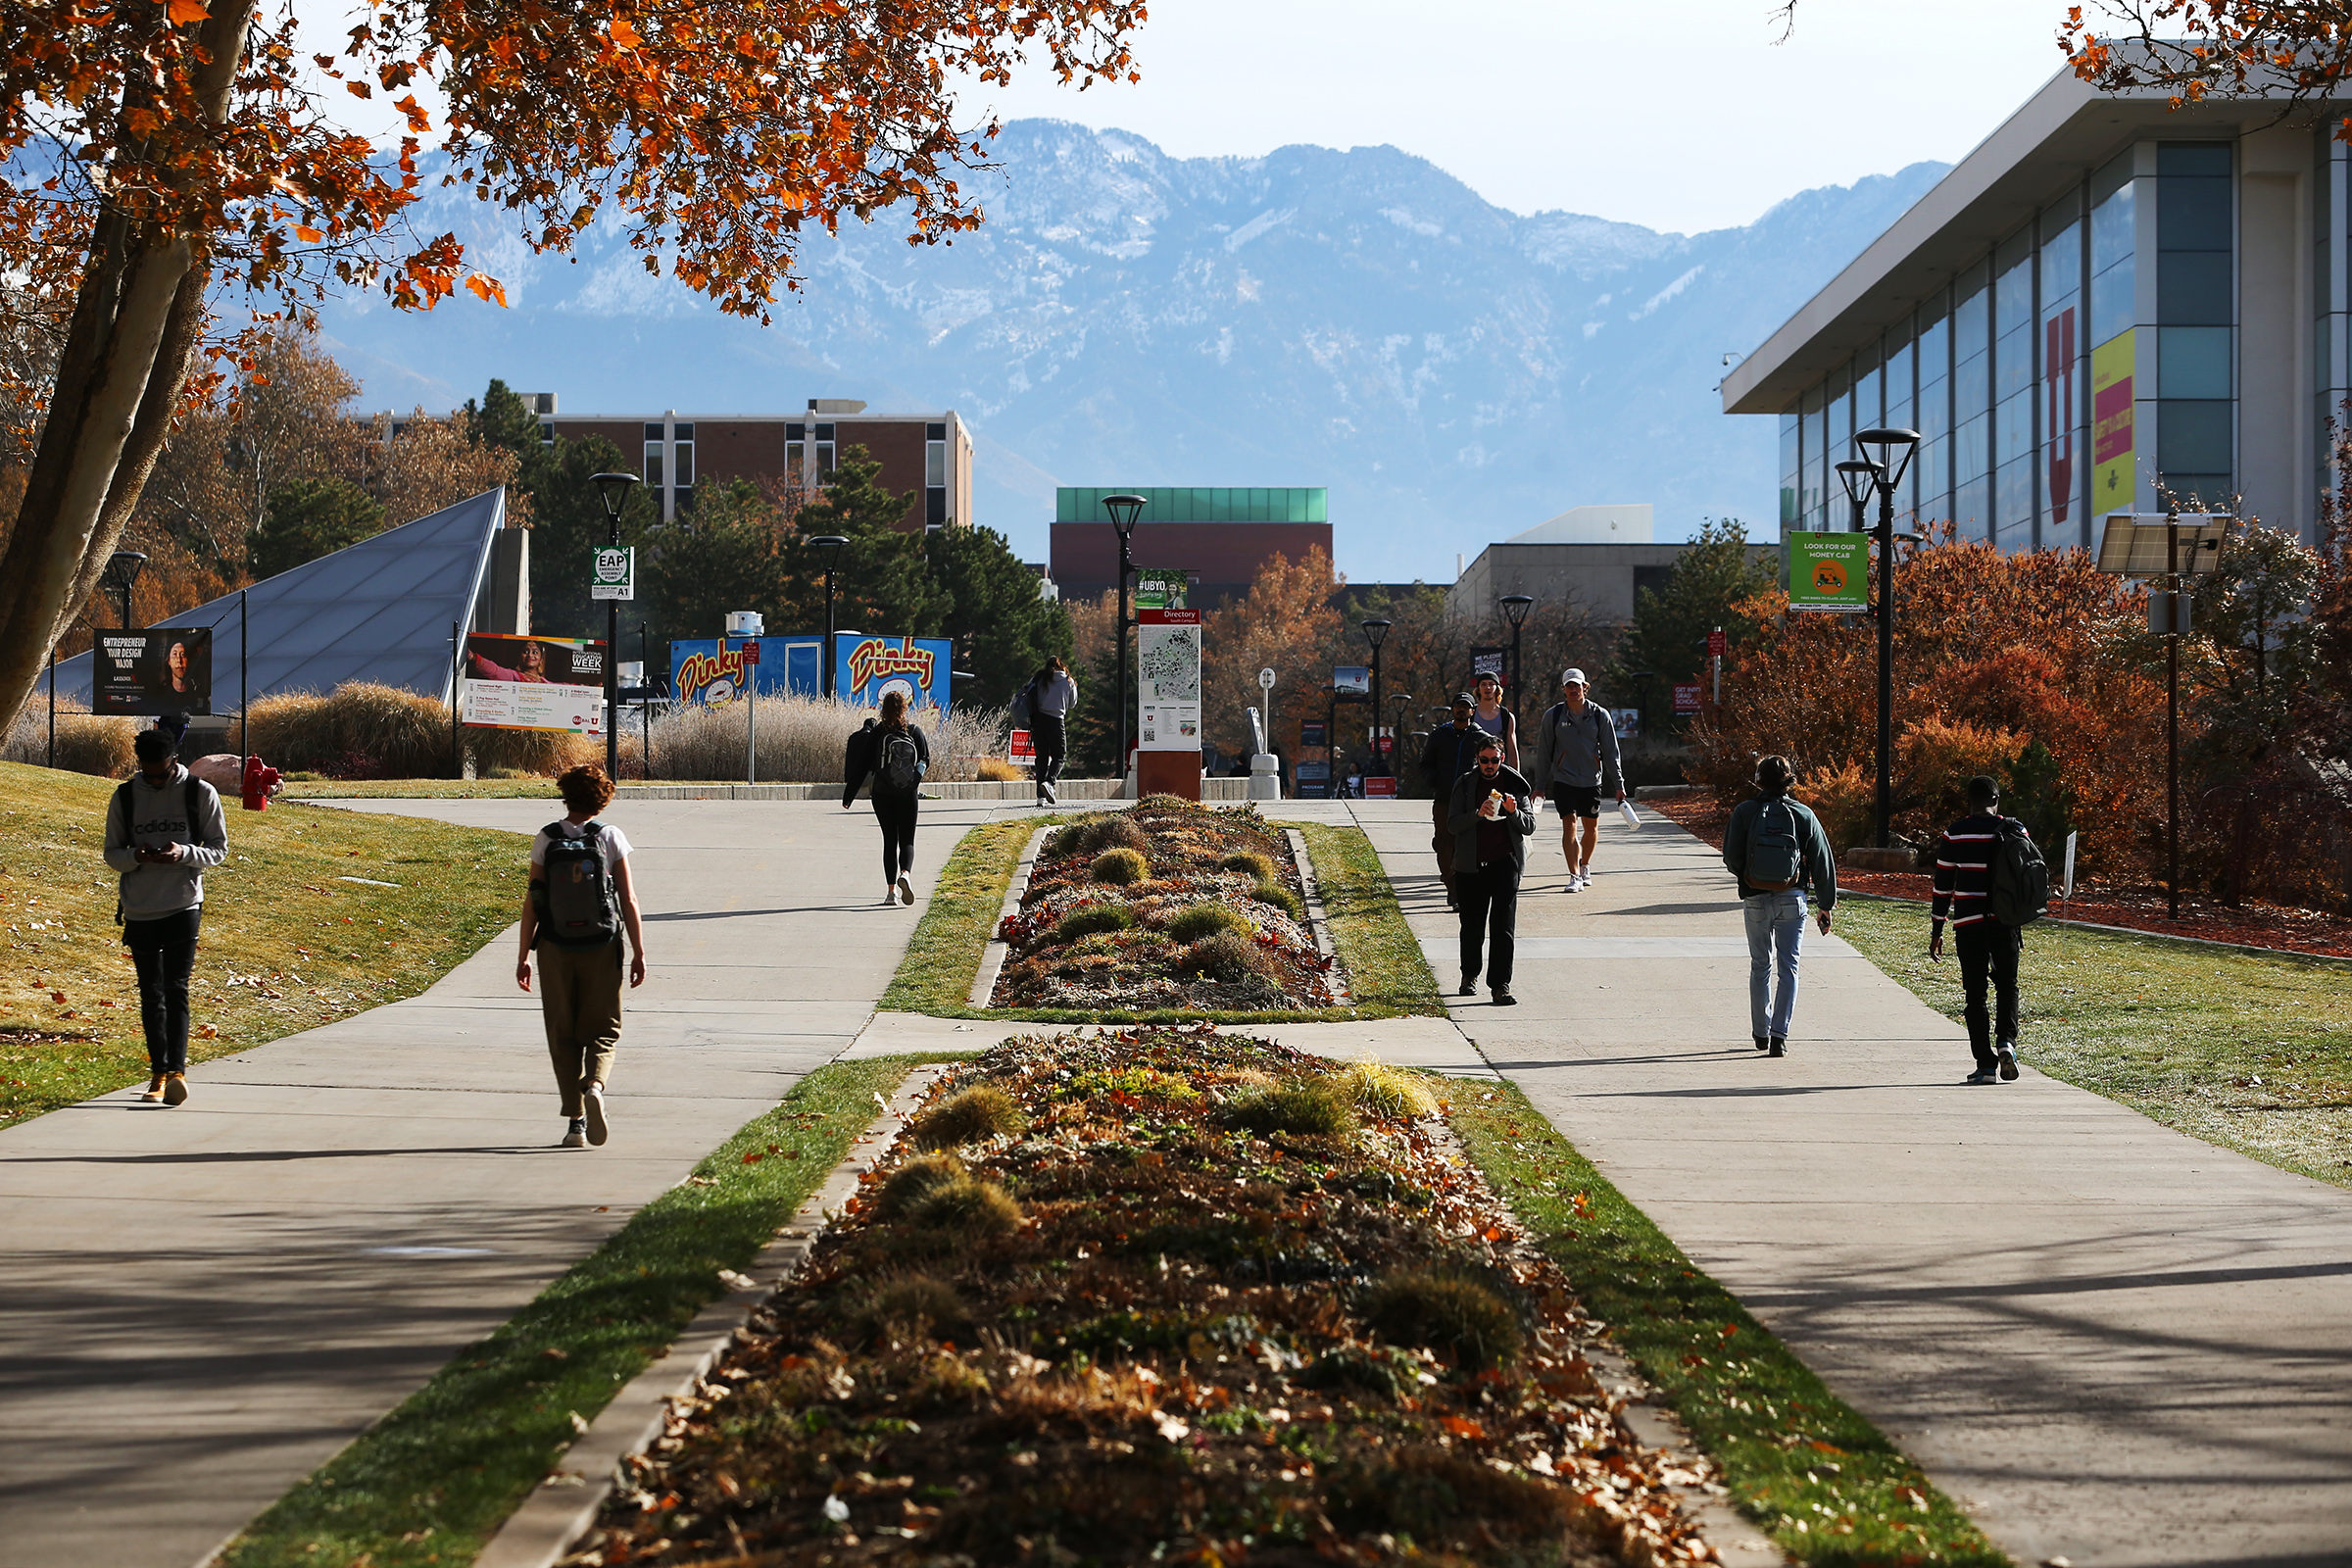 Students walk through the University of Utah campus in Salt Lake City on Monday, Nov. 18, 2019.